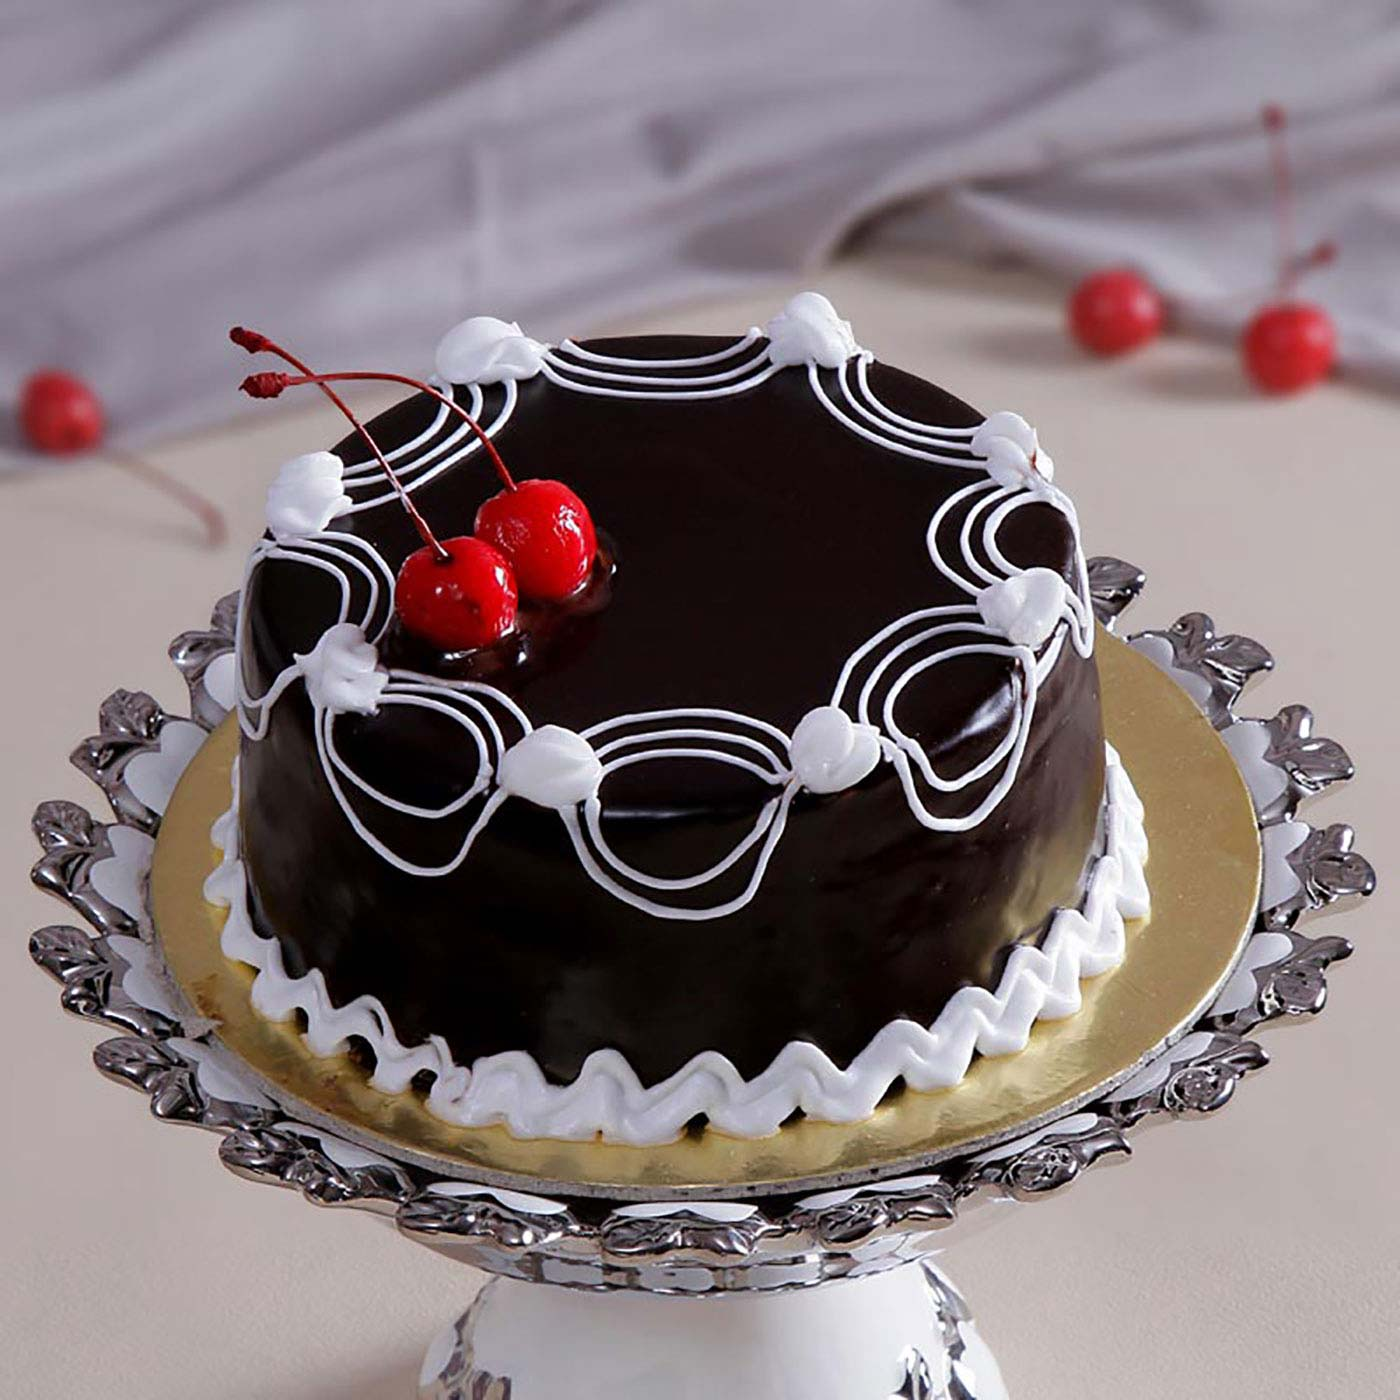 Chocolate Cake with Cherry Toppings